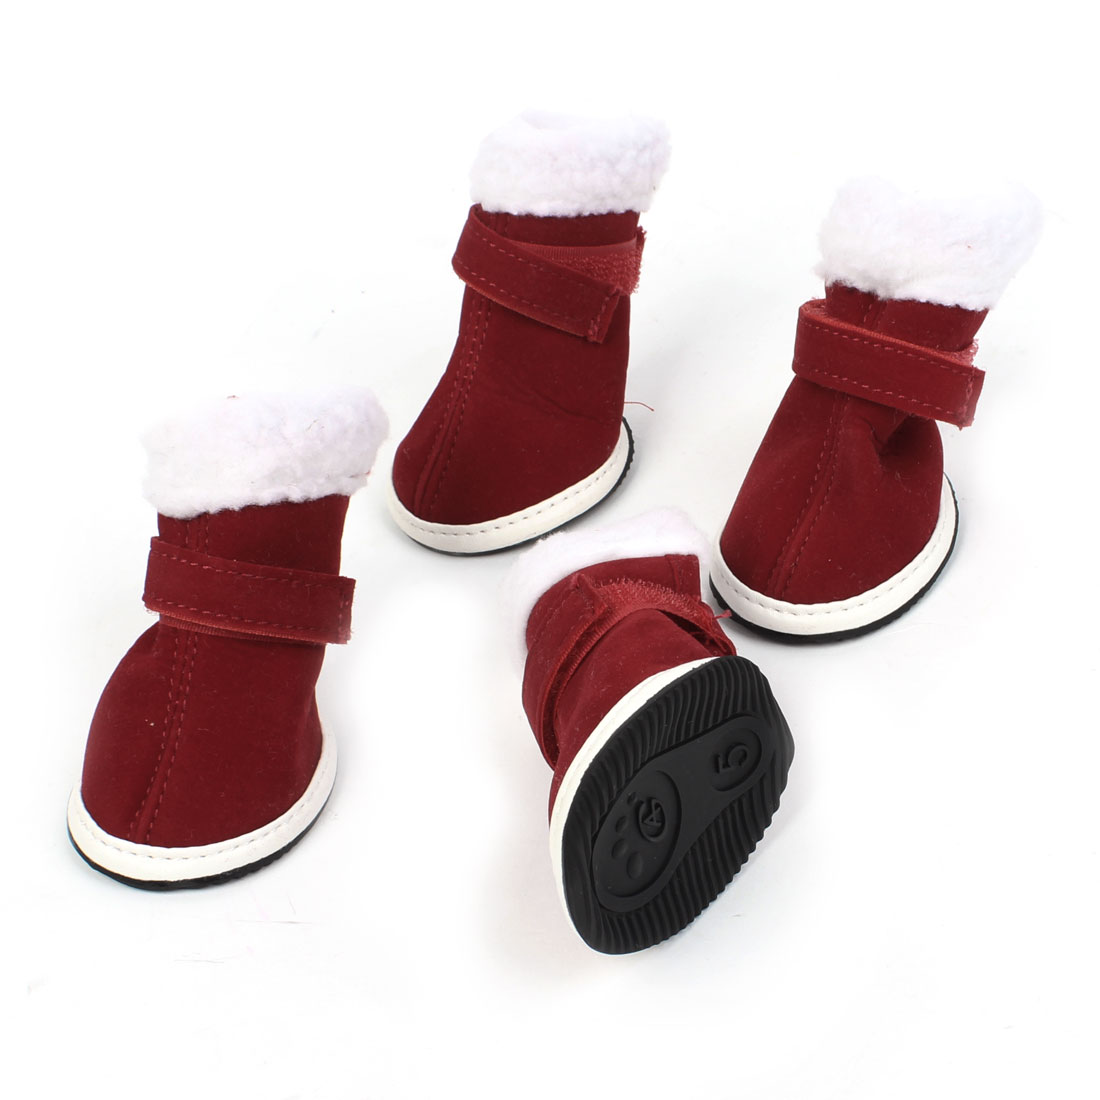 2 Pairs White Burgundy Detachable Closure Xmas Boots Shoes XS for Pet Dog Doggie